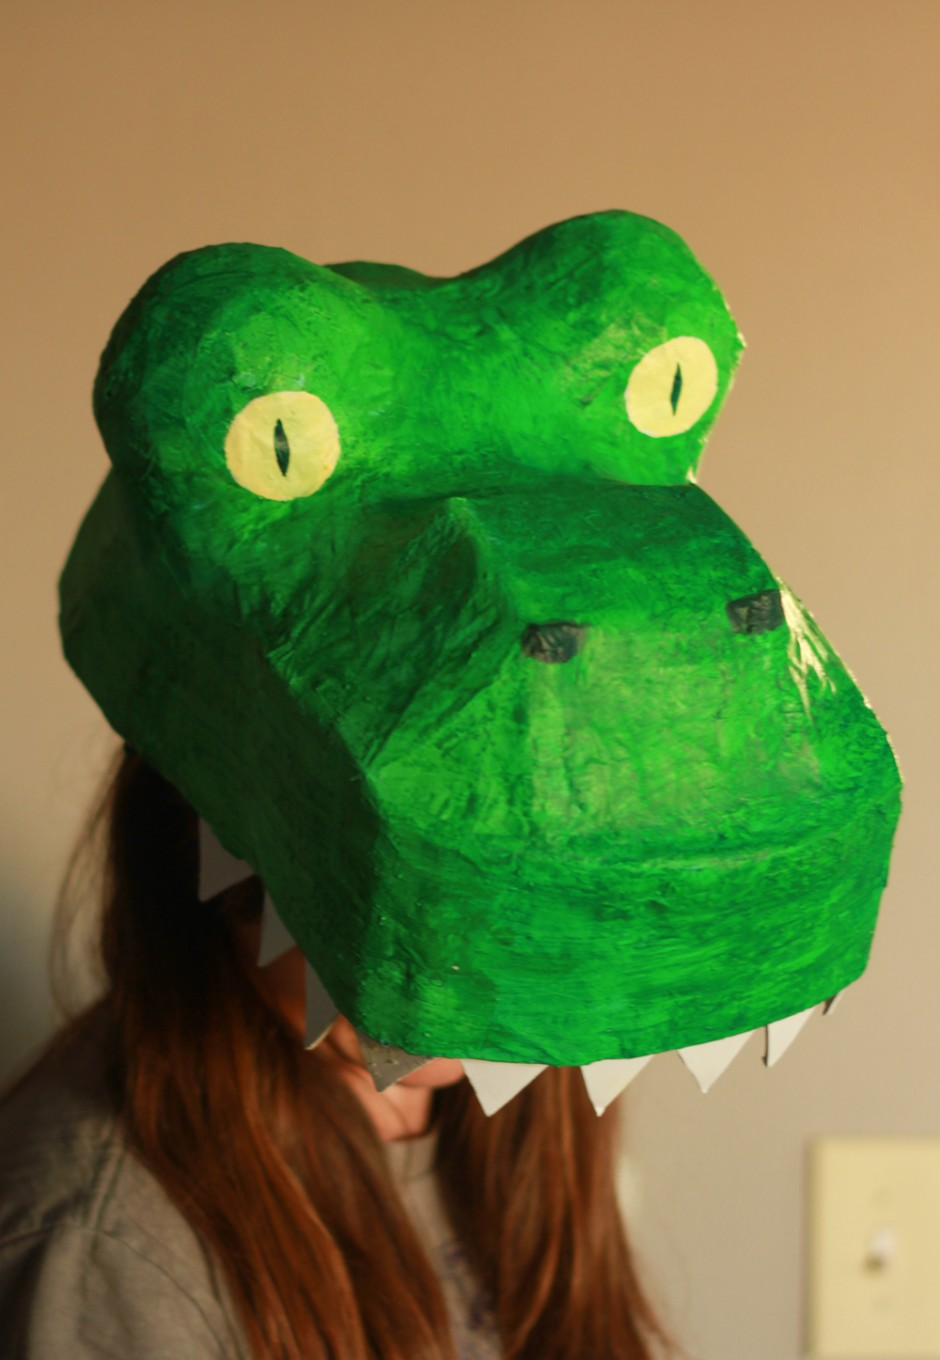 T-rex costume DIY tutorial: Dinosaur mask